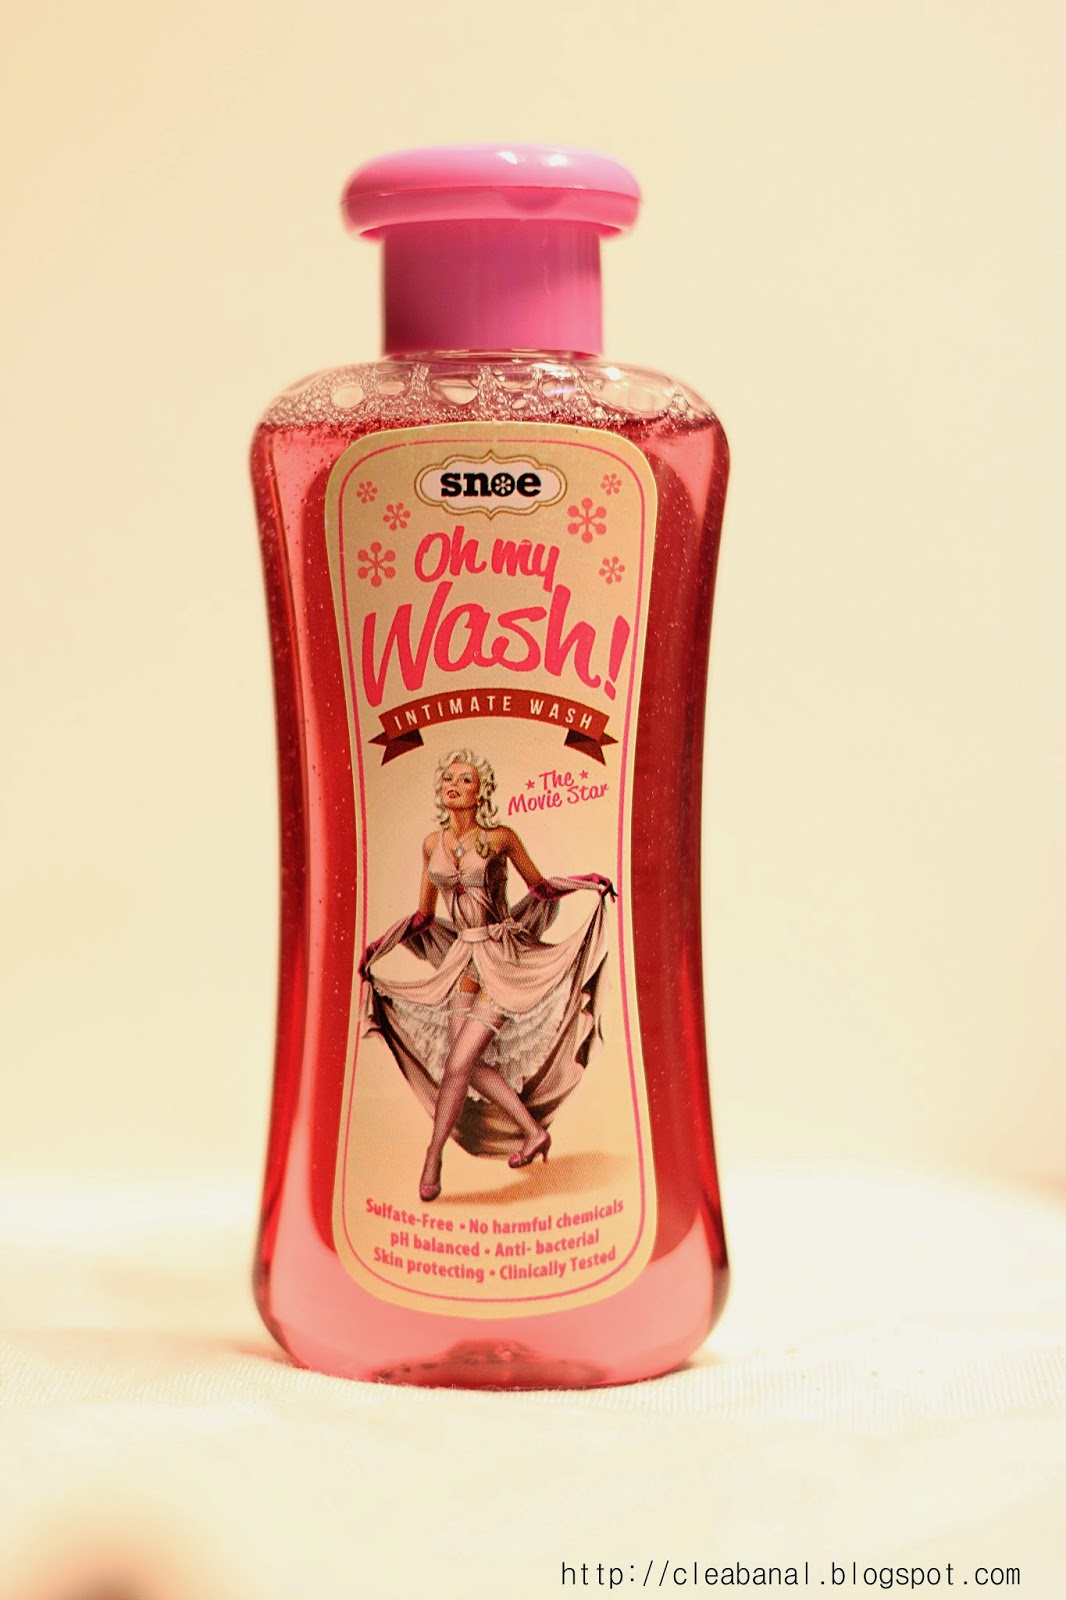 Snoe : Oh My Wash! The Movie Star Intimate Wash Review